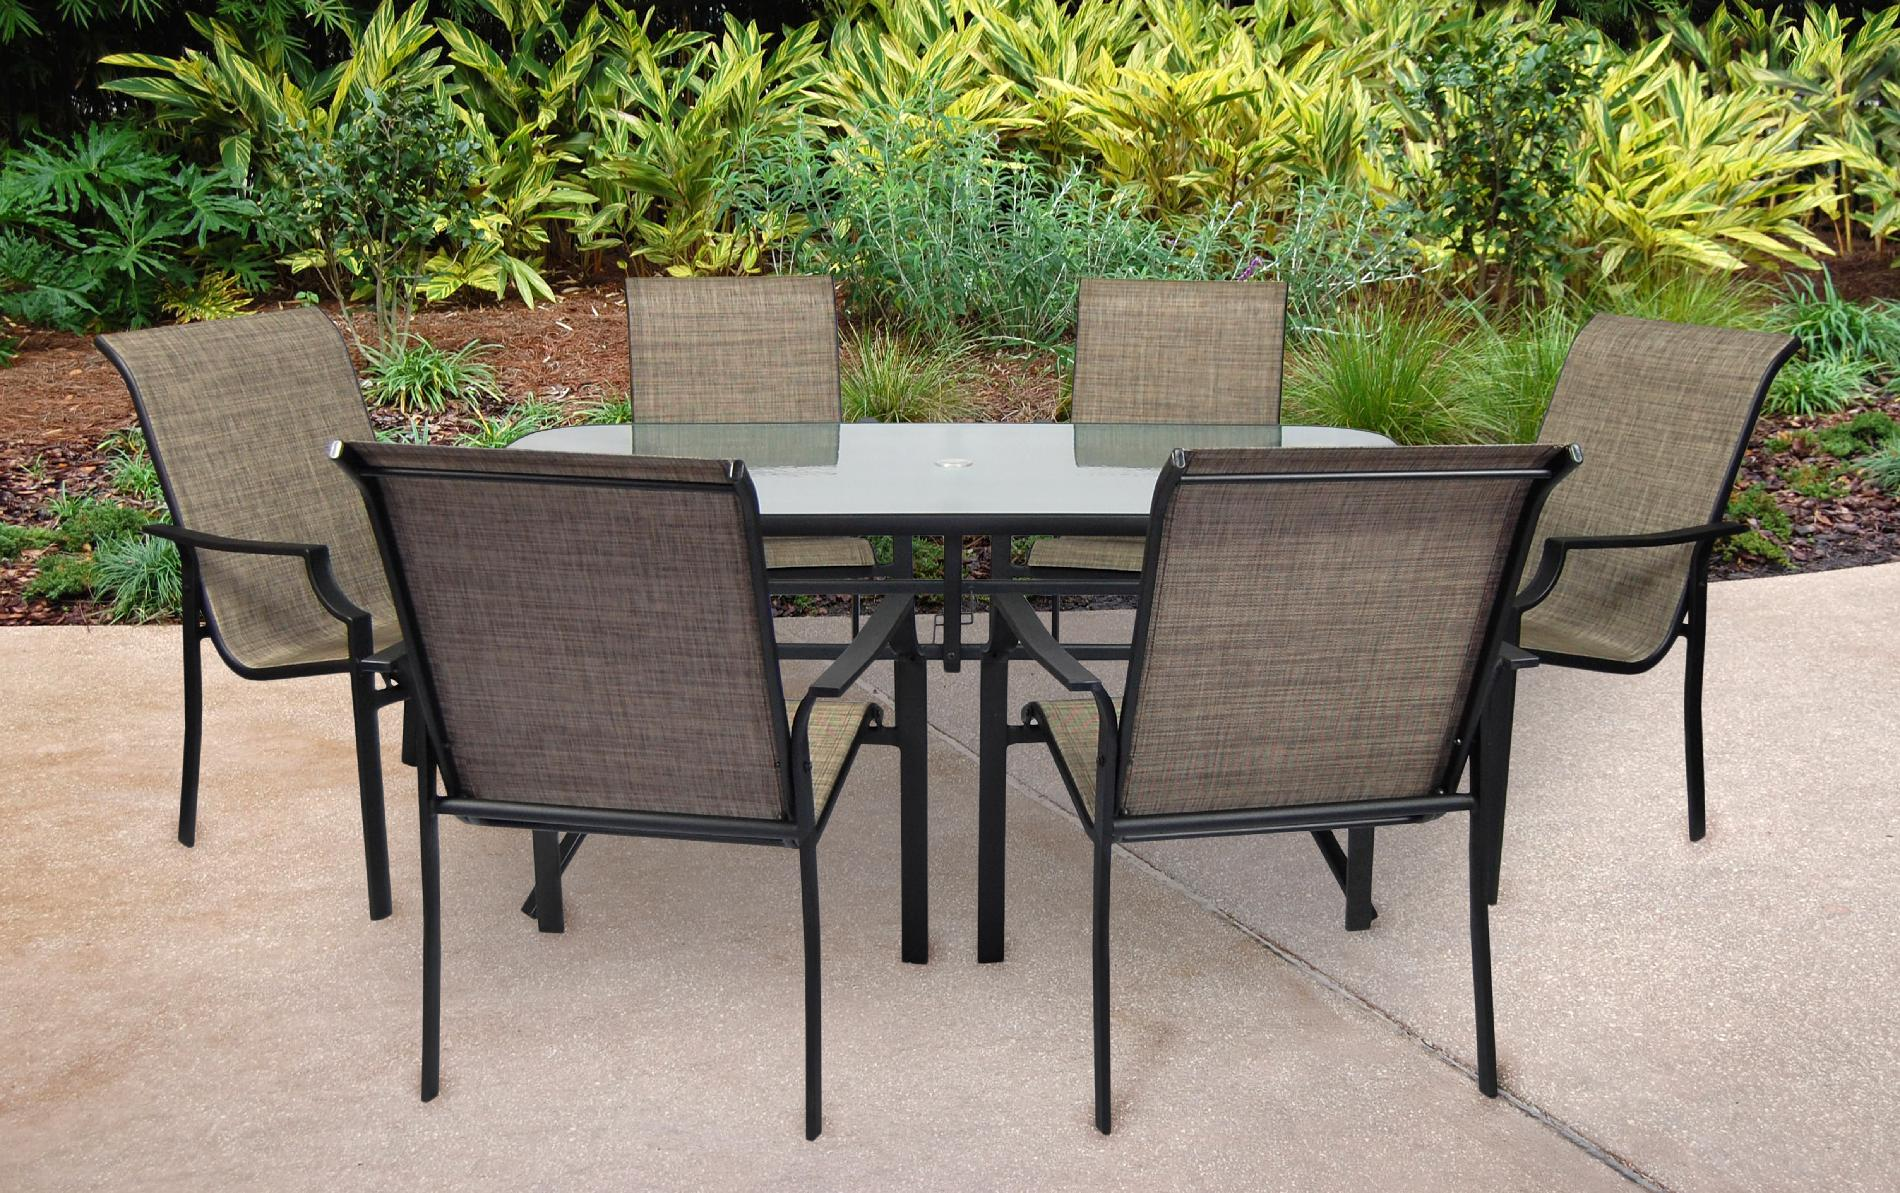 Ss-355-2set - Fairfield 7 Pc Patio Dining Set Sears Outlet